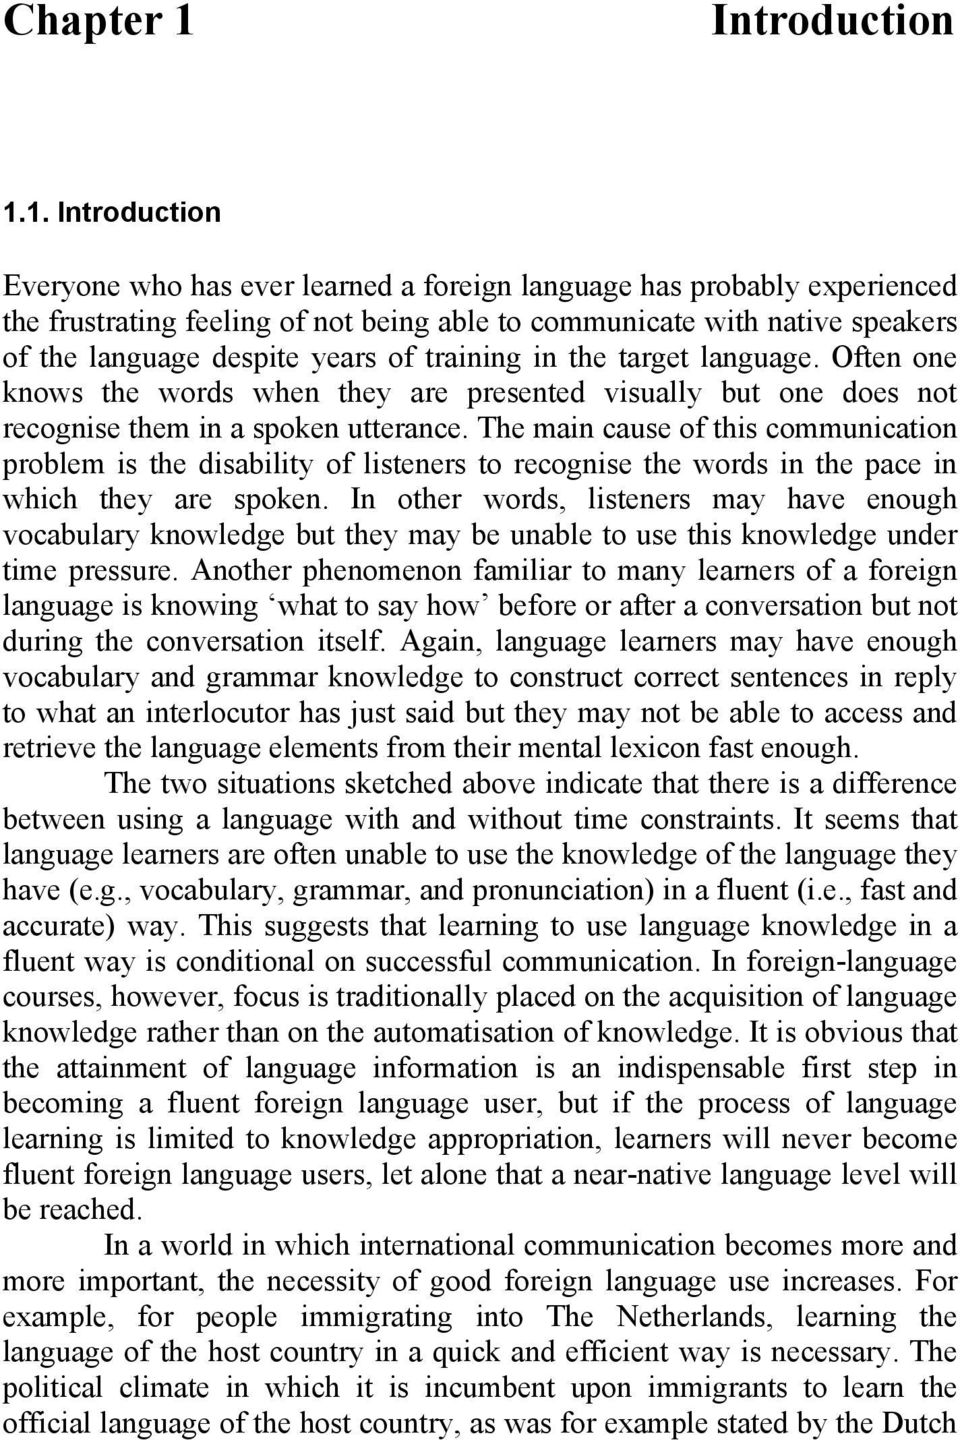 1. Introduction Everyone who has ever learned a foreign language has probably experienced the frustrating feeling of not being able to communicate with native speakers of the language despite years